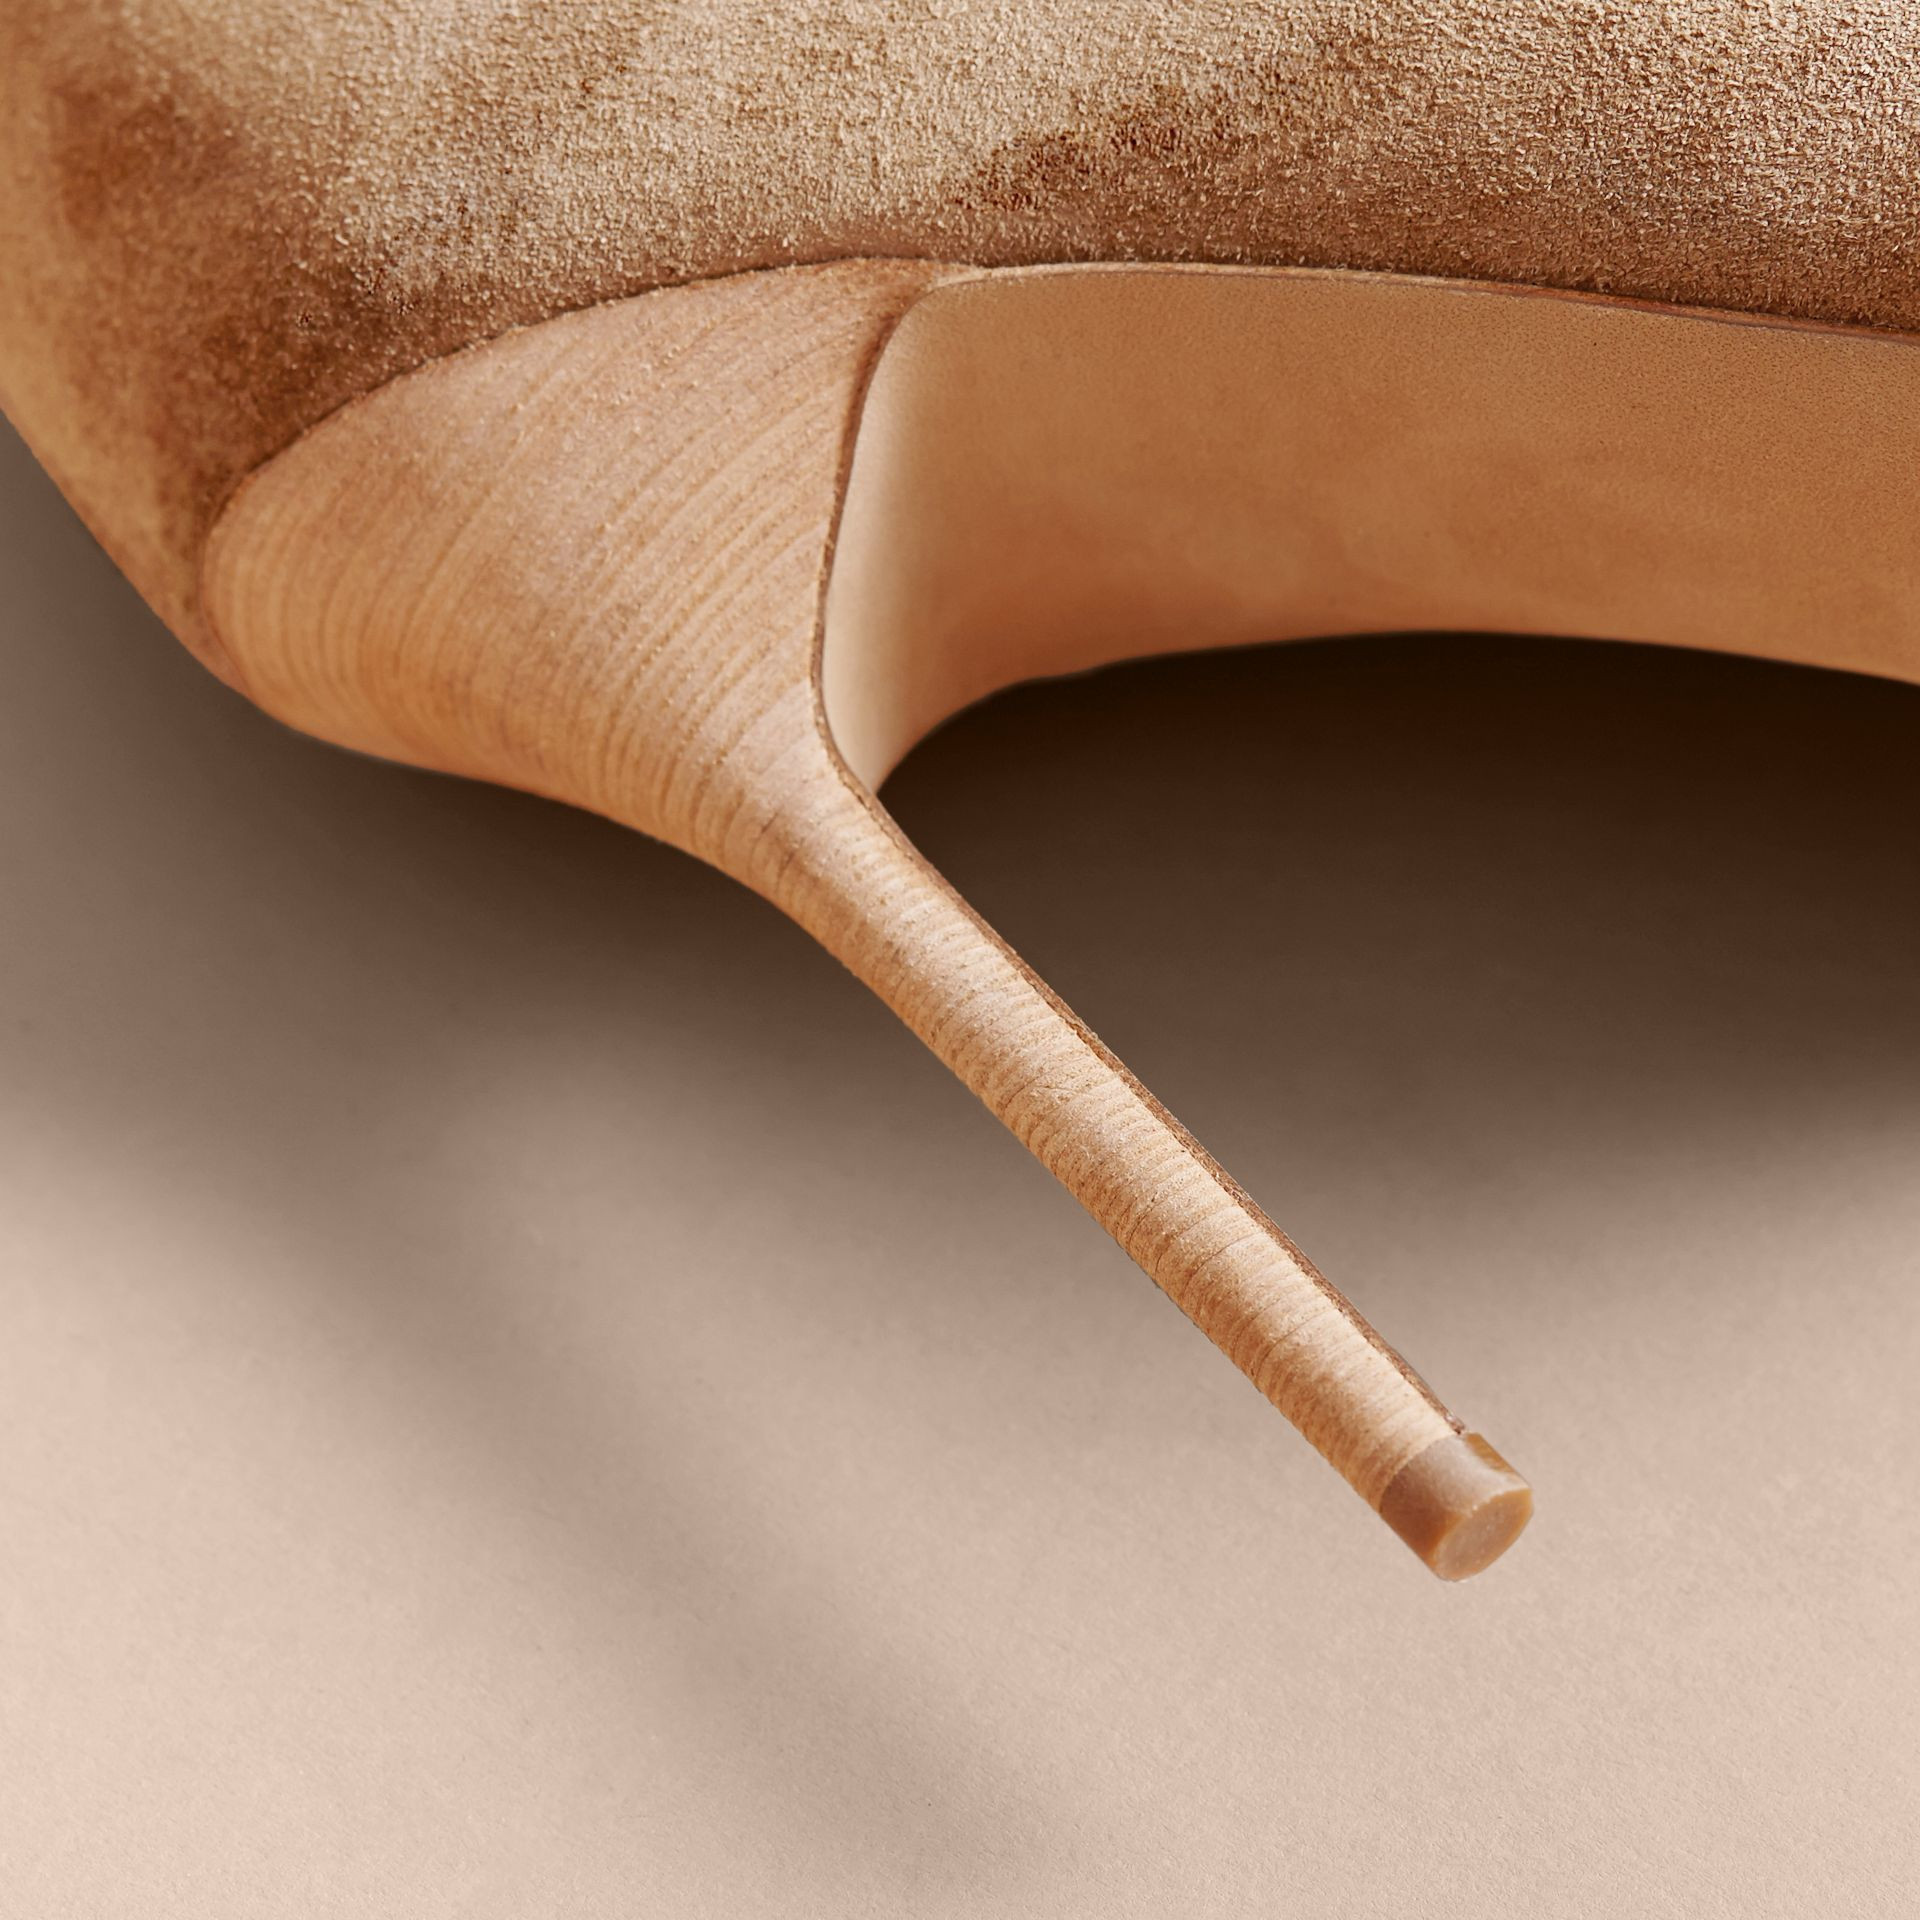 Scalloped Suede Ankle Boots in Sandstone - Women | Burberry Hong Kong - gallery image 5